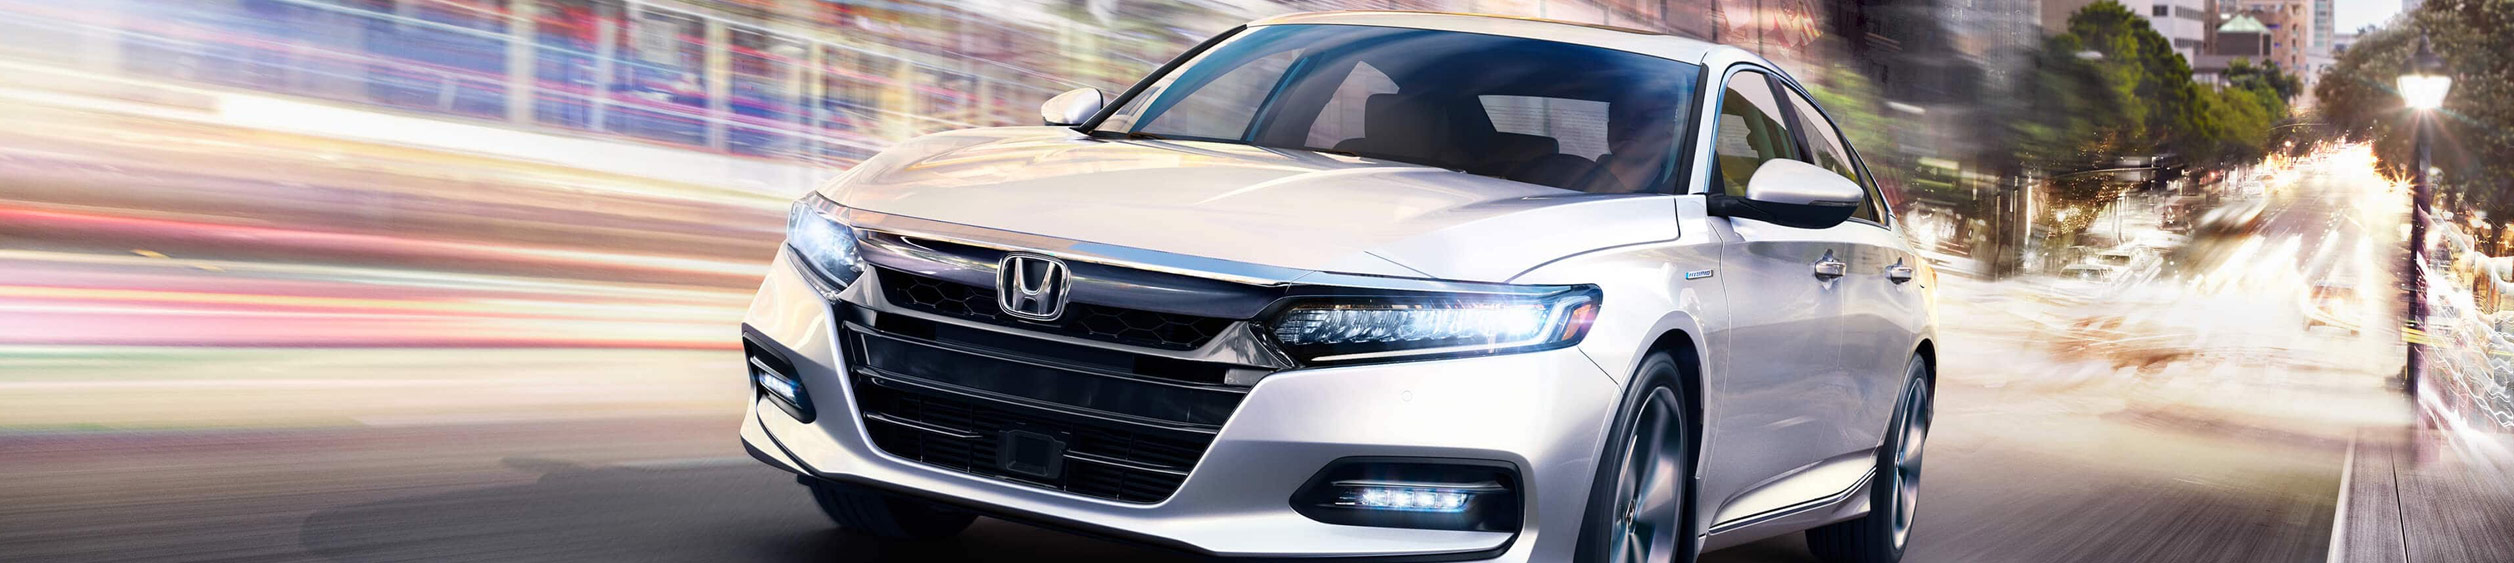 2019 Honda Accord Hybrid feature